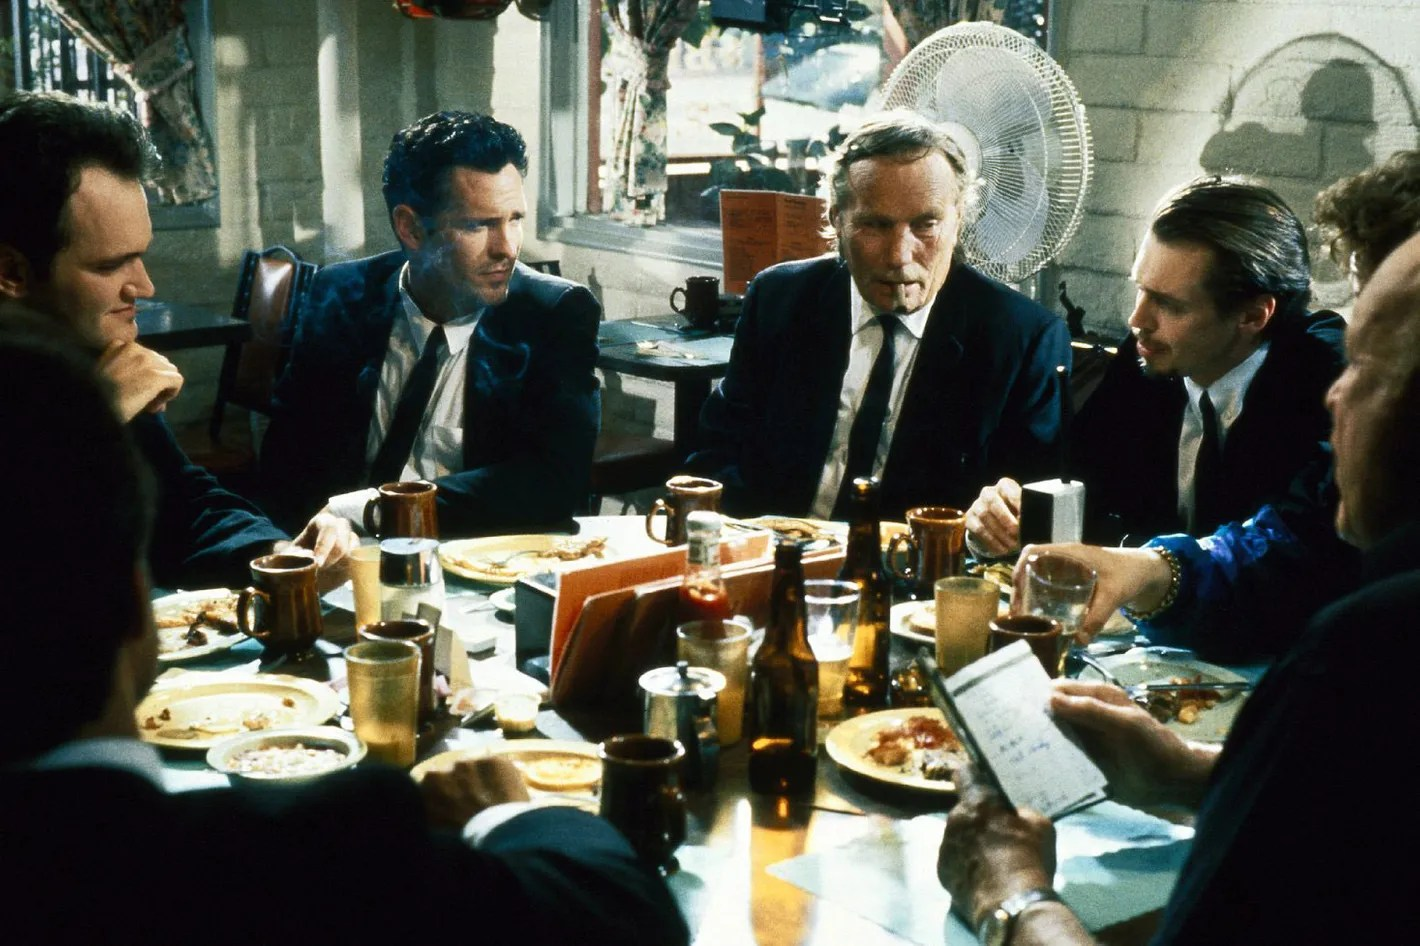 https://i1.wp.com/pixel.nymag.com/imgs/daily/vulture/2015/08/27/27-reservoir-dogs.w710.h473.2x.jpg